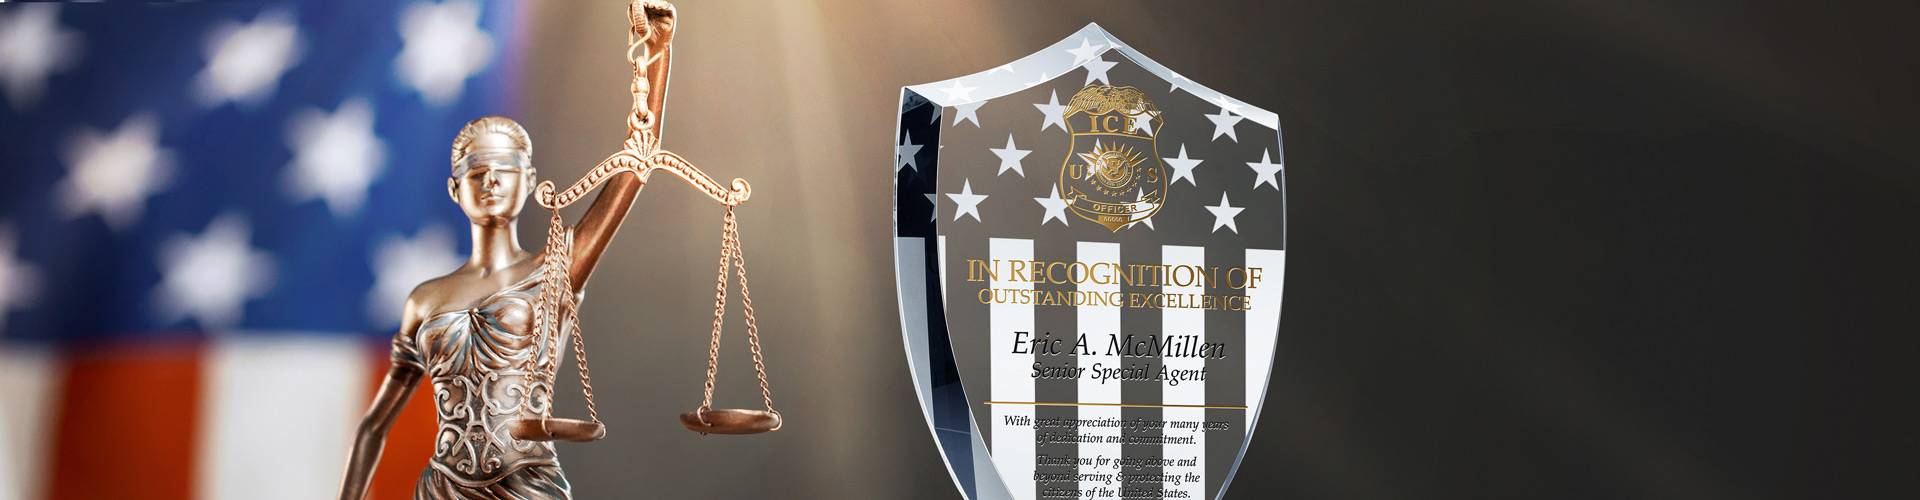 Custom Gift Award Plaques for Law Enforcement Professionals - Banner 1